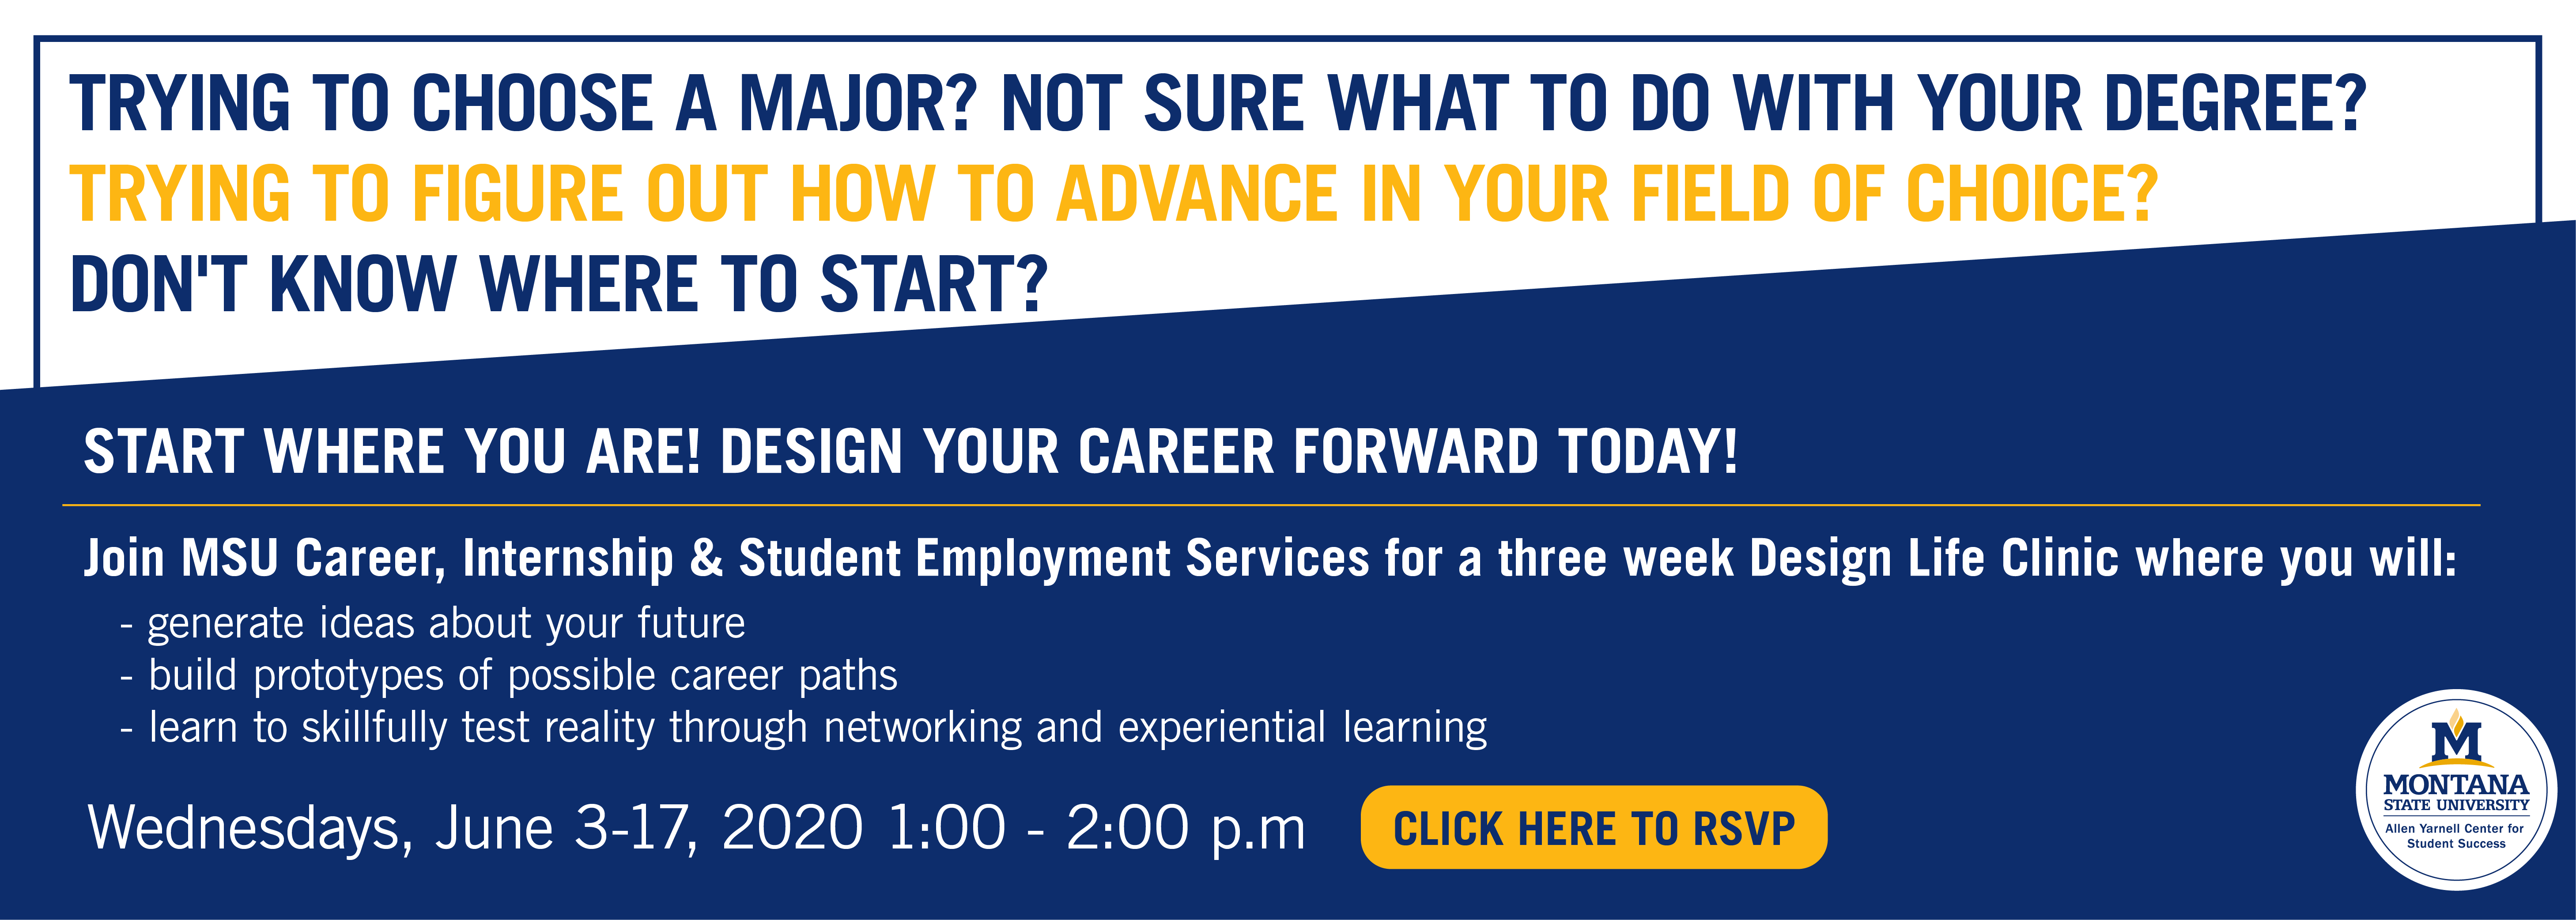 Trying to choose a major? not sure what to do with your degree? trying to figure out how to advance on your feild? Dont know where to start? Start where you are! Design your career forward today!    Wednesday, June 3, 1-2 PM. Wednesday June 10, 1-2 PM Wednesday June 17, 1-2 PM